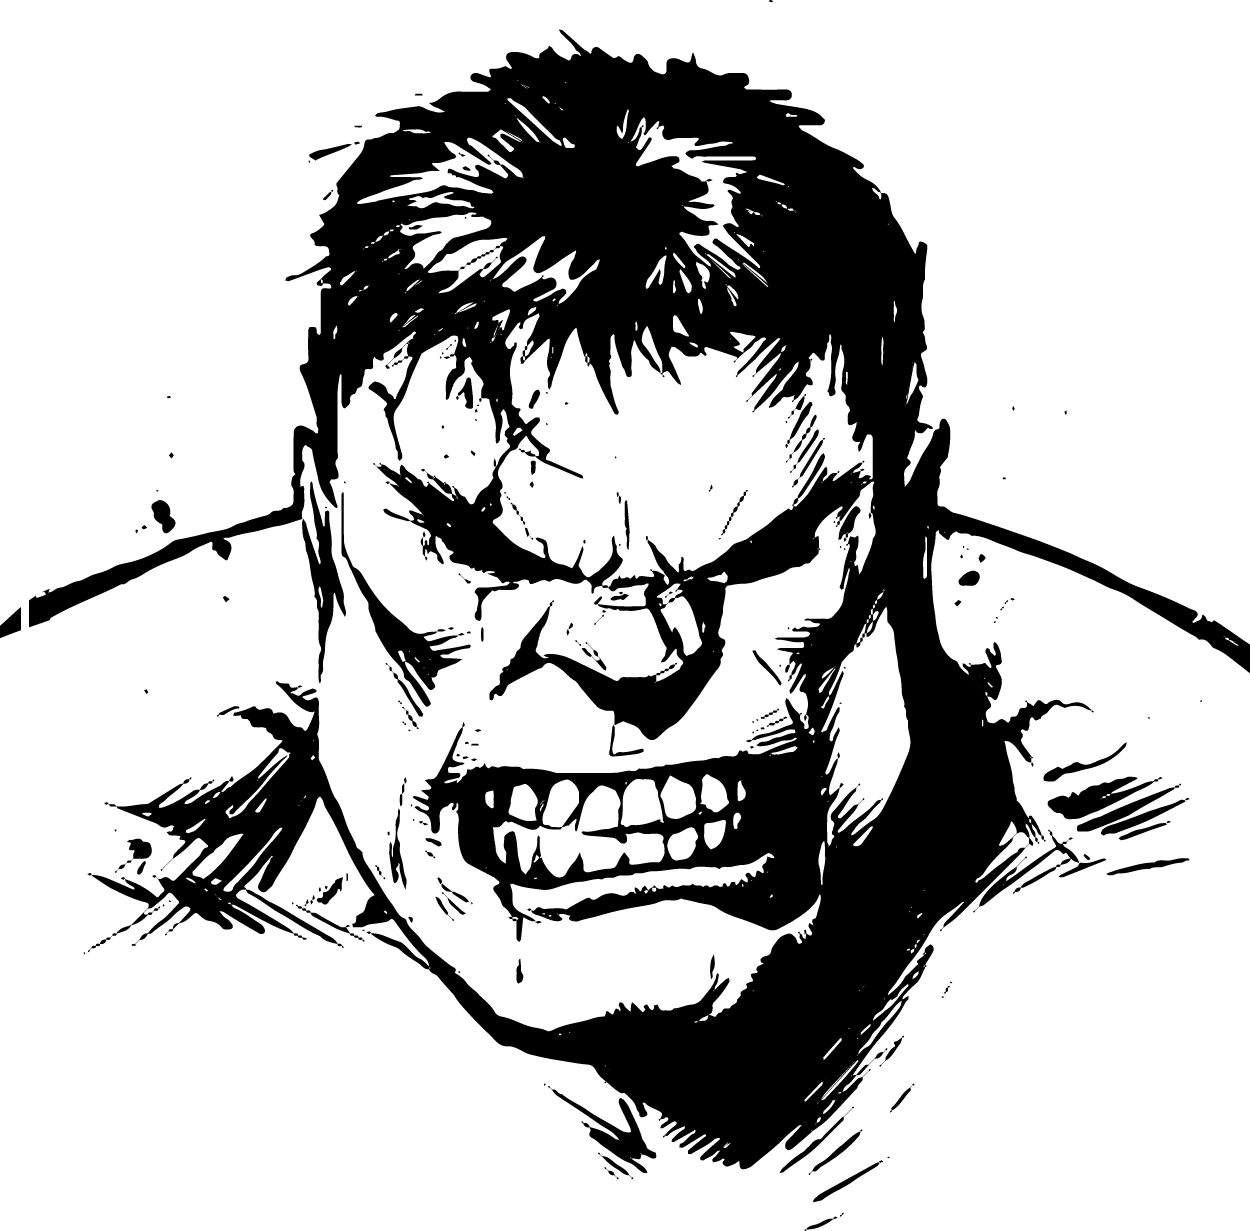 Hulk Face Line Drawing : Hulk vector superhero pinterest